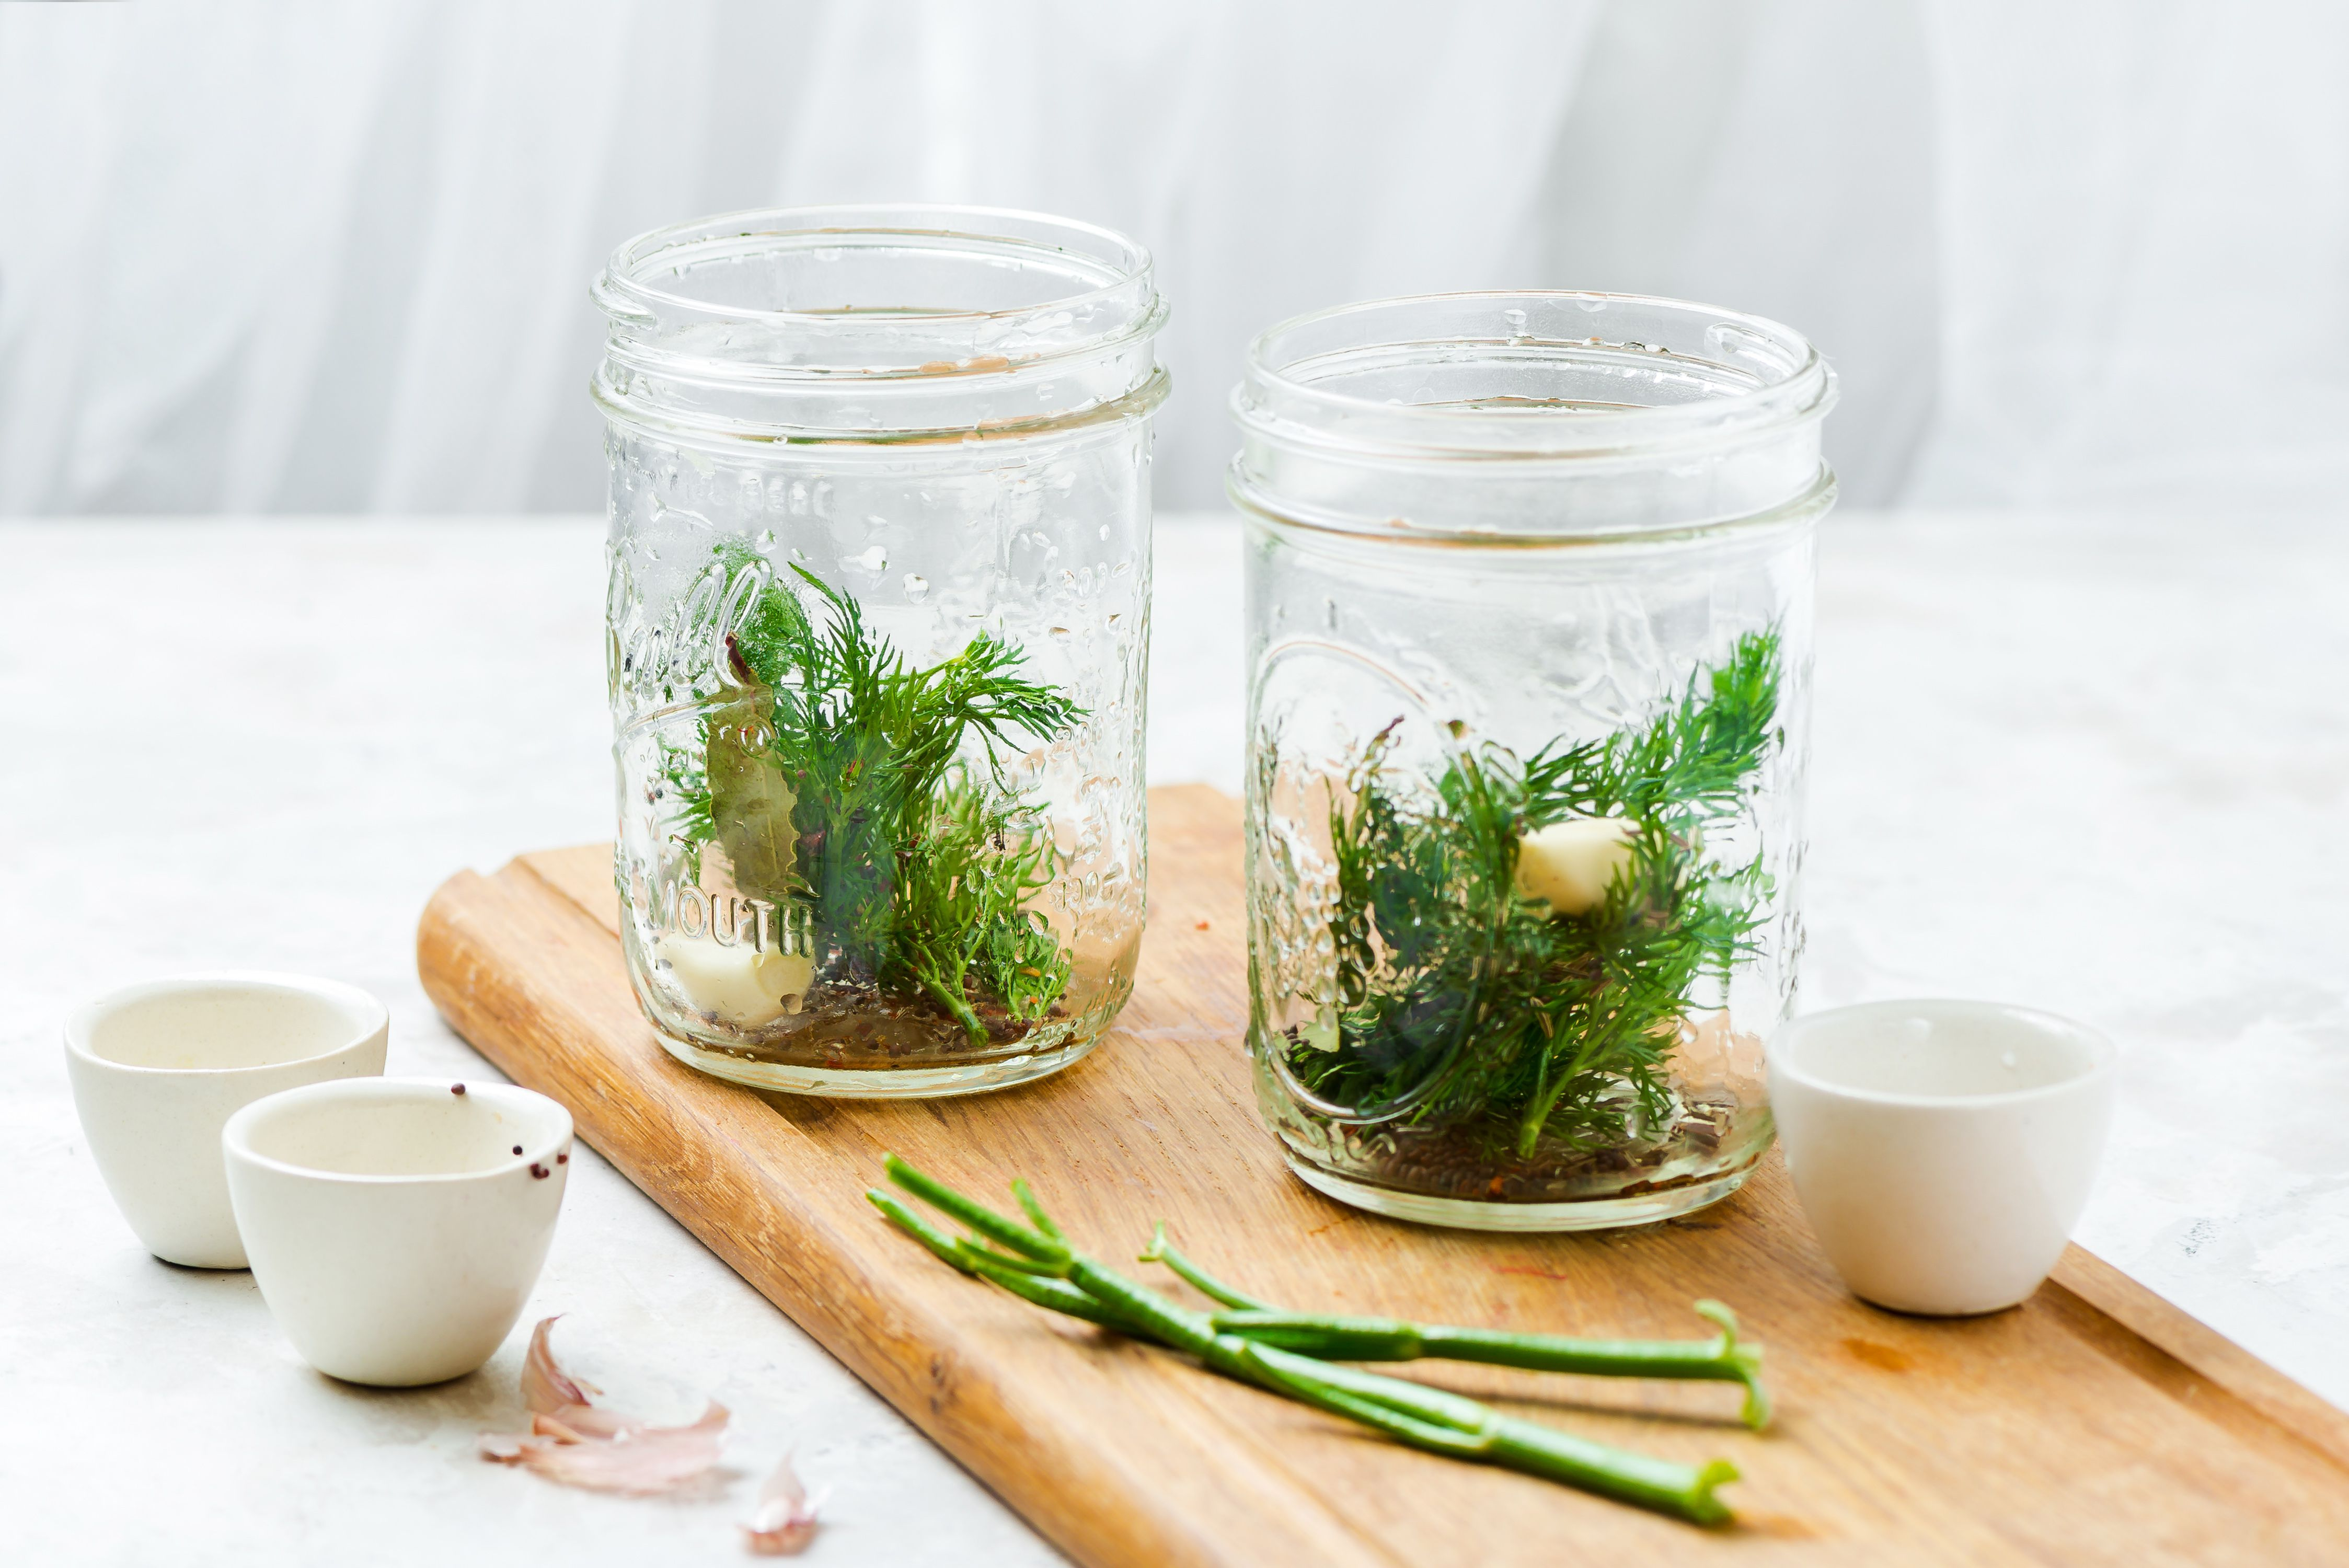 Divide herbs and spices into jars